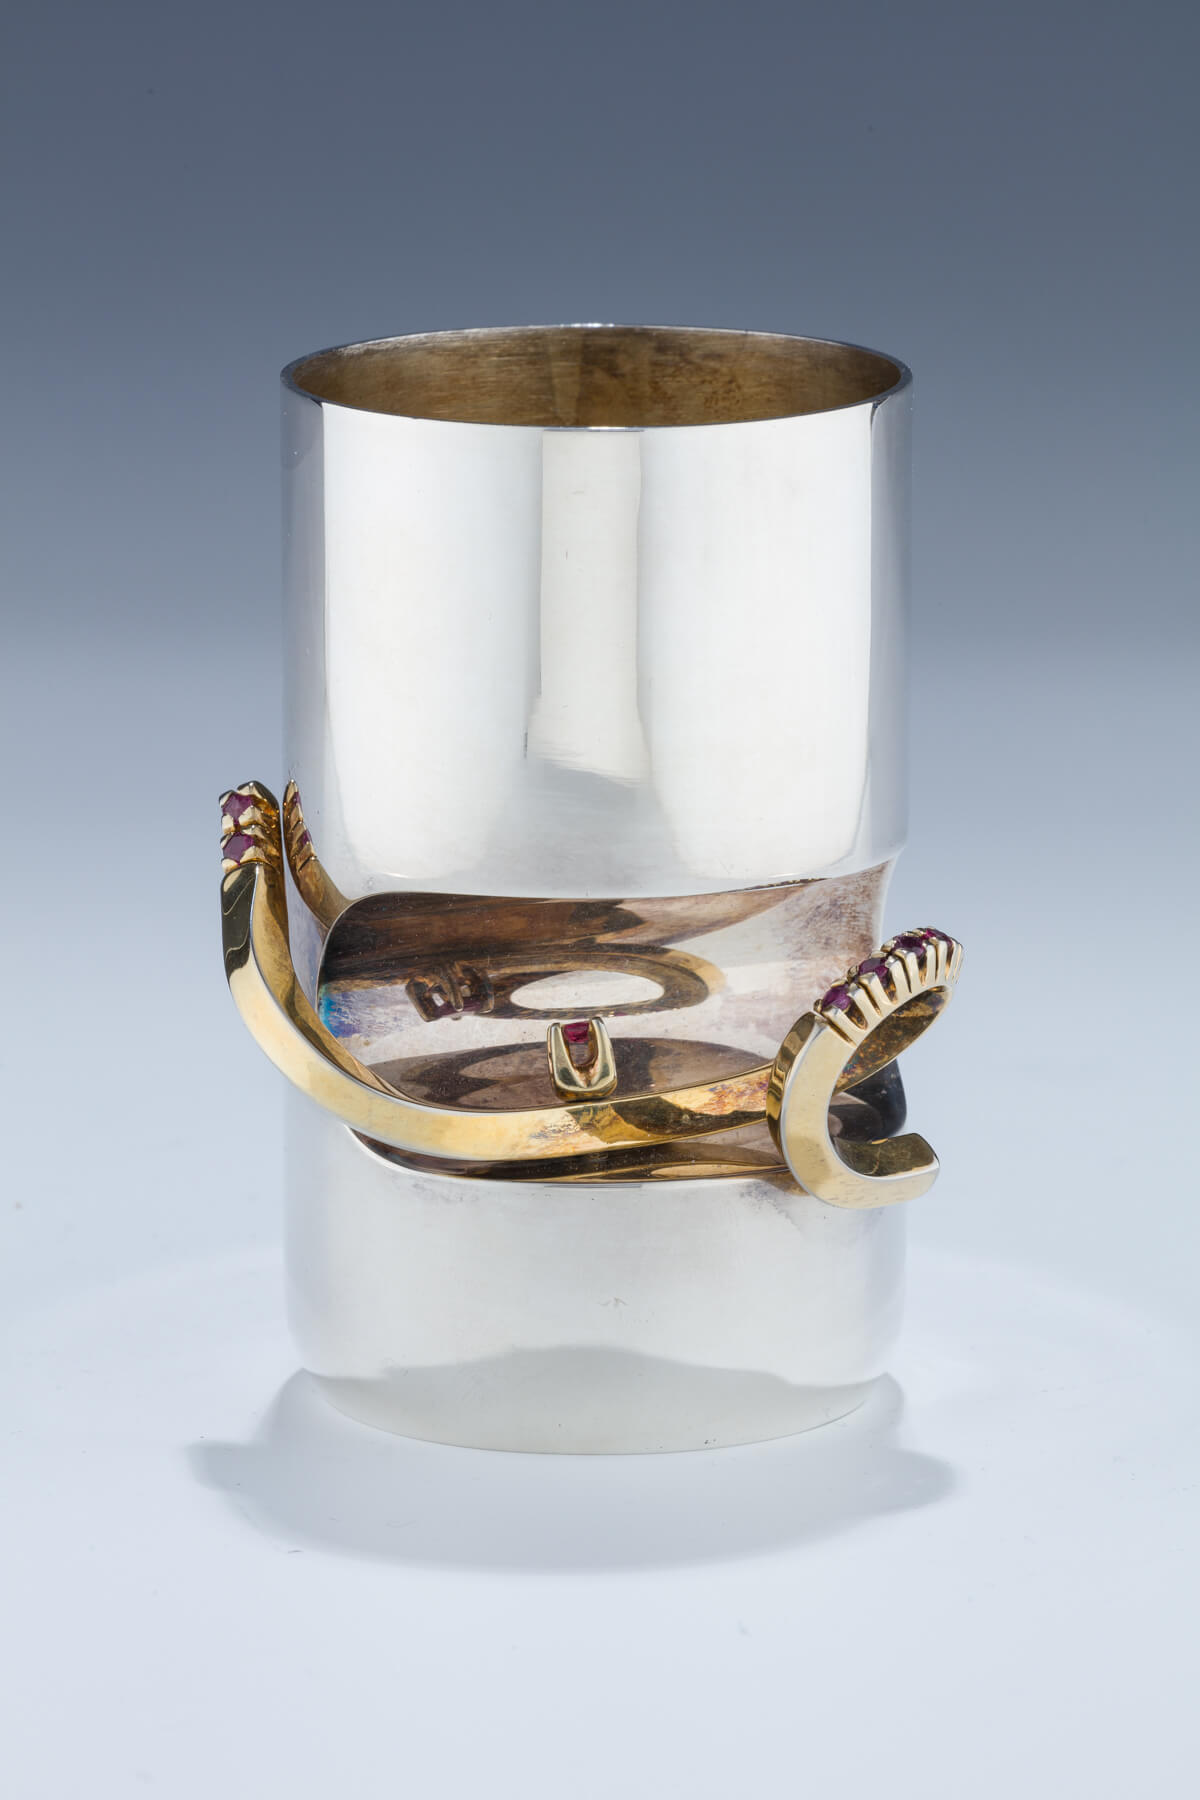 168. A Sterling Silver Kiddush Cup by Carmel Shabi